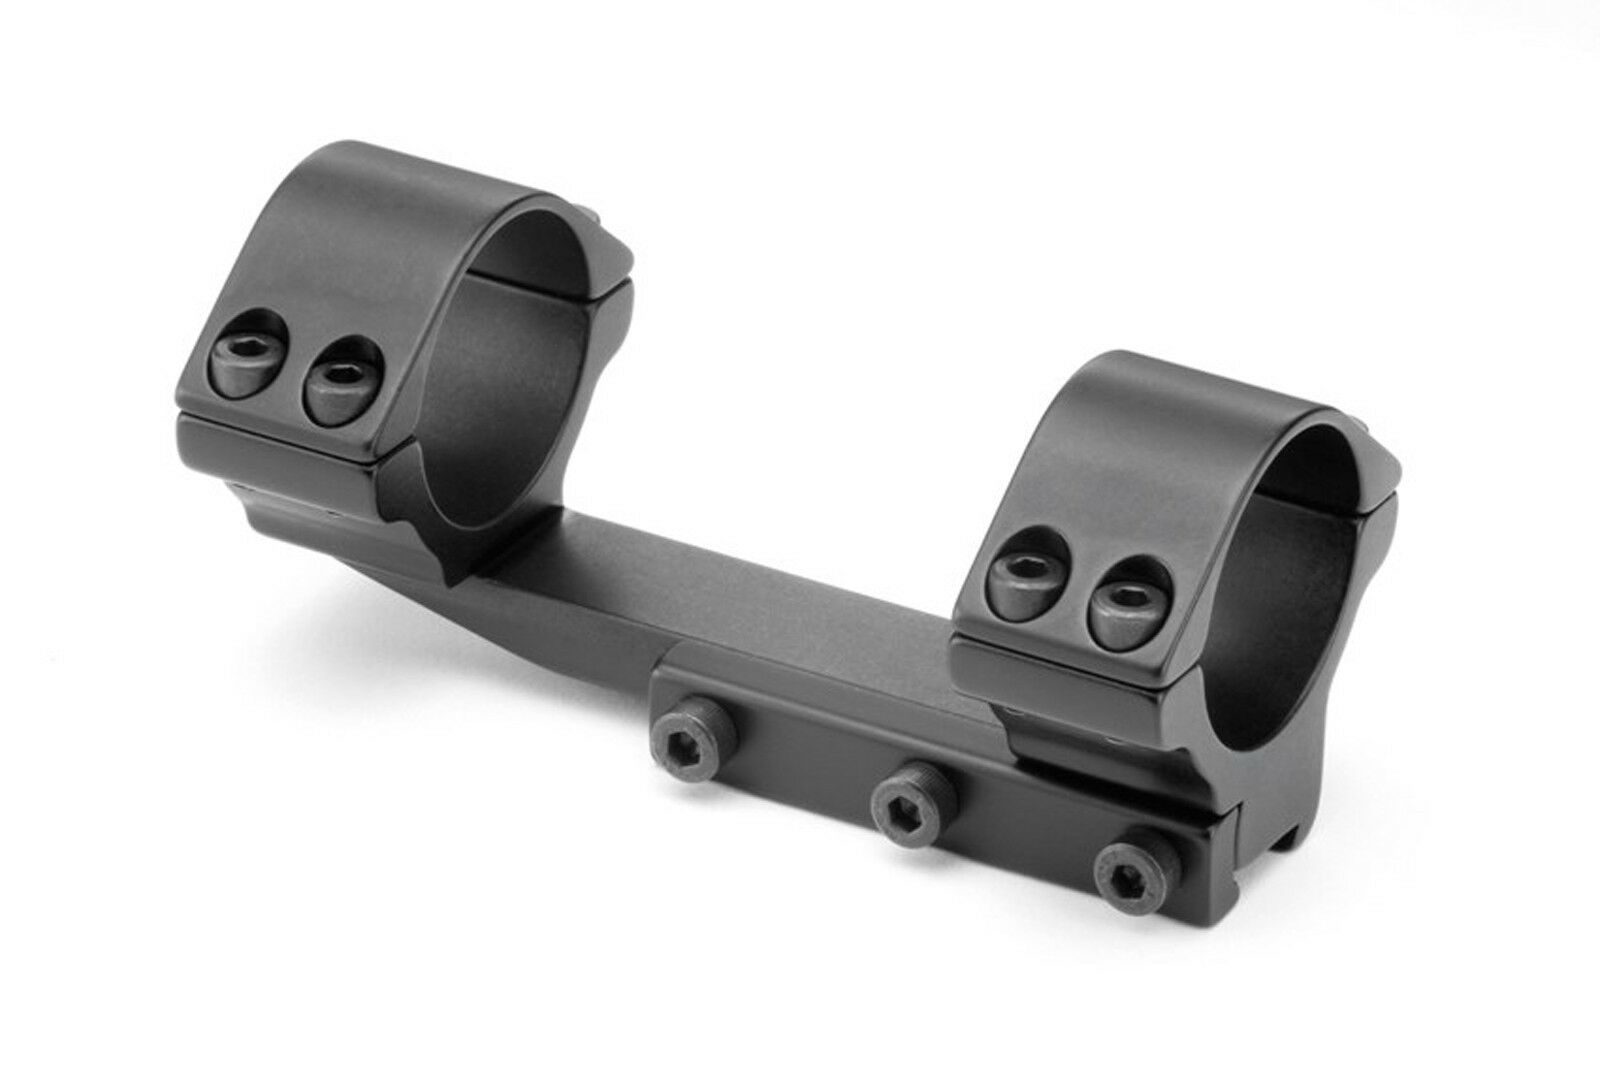 SPORTSMATCH OP44C MEDIUM EXTENDED 1 PC MOUNT FOR 30MM TUBES FITS DOVETAIL